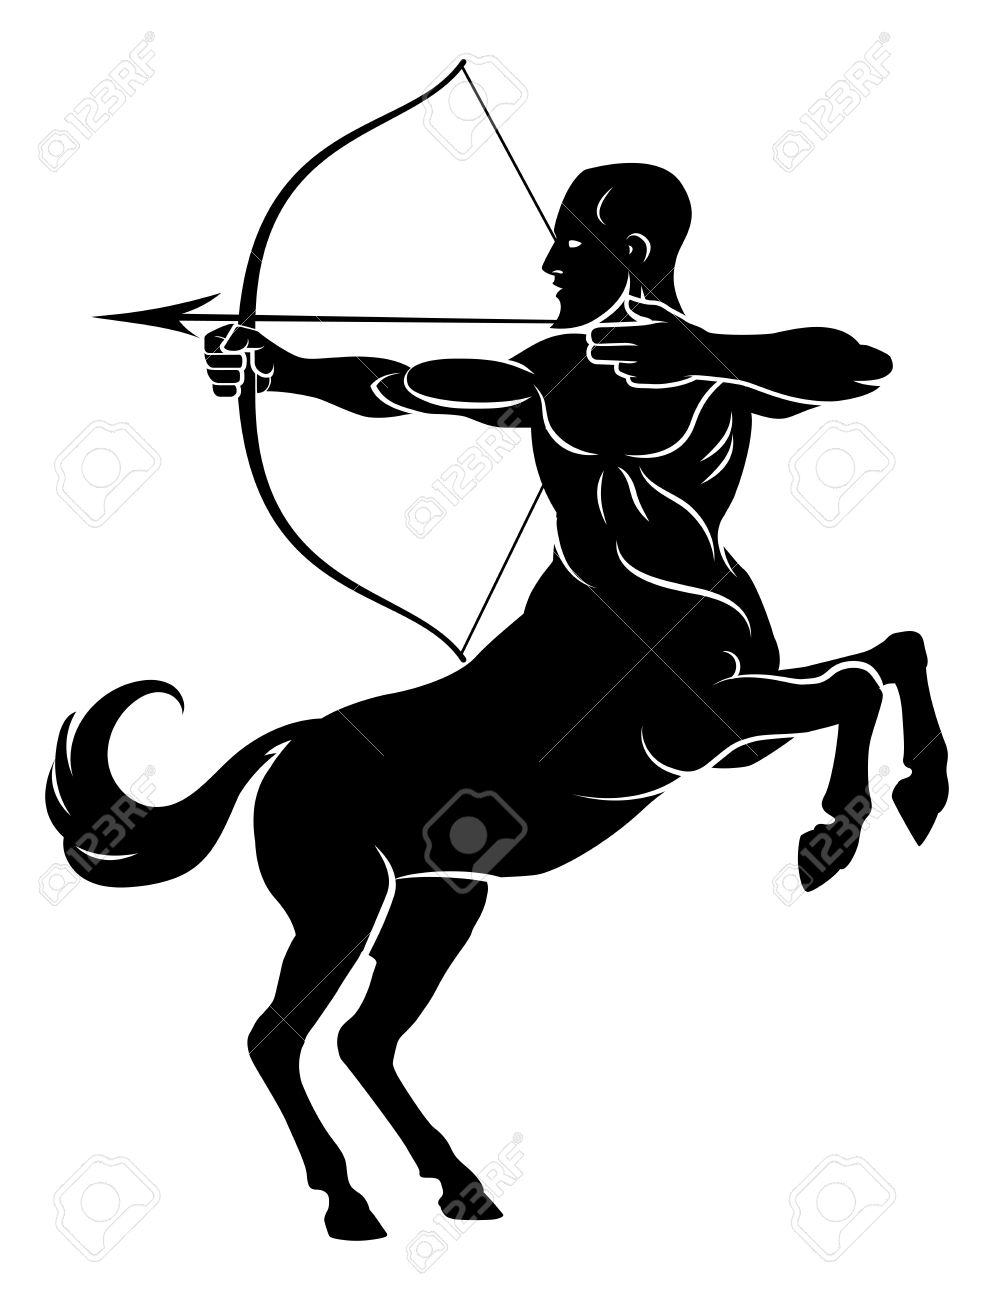 1,295 The Centaur Stock Vector Illustration And Royalty Free The.